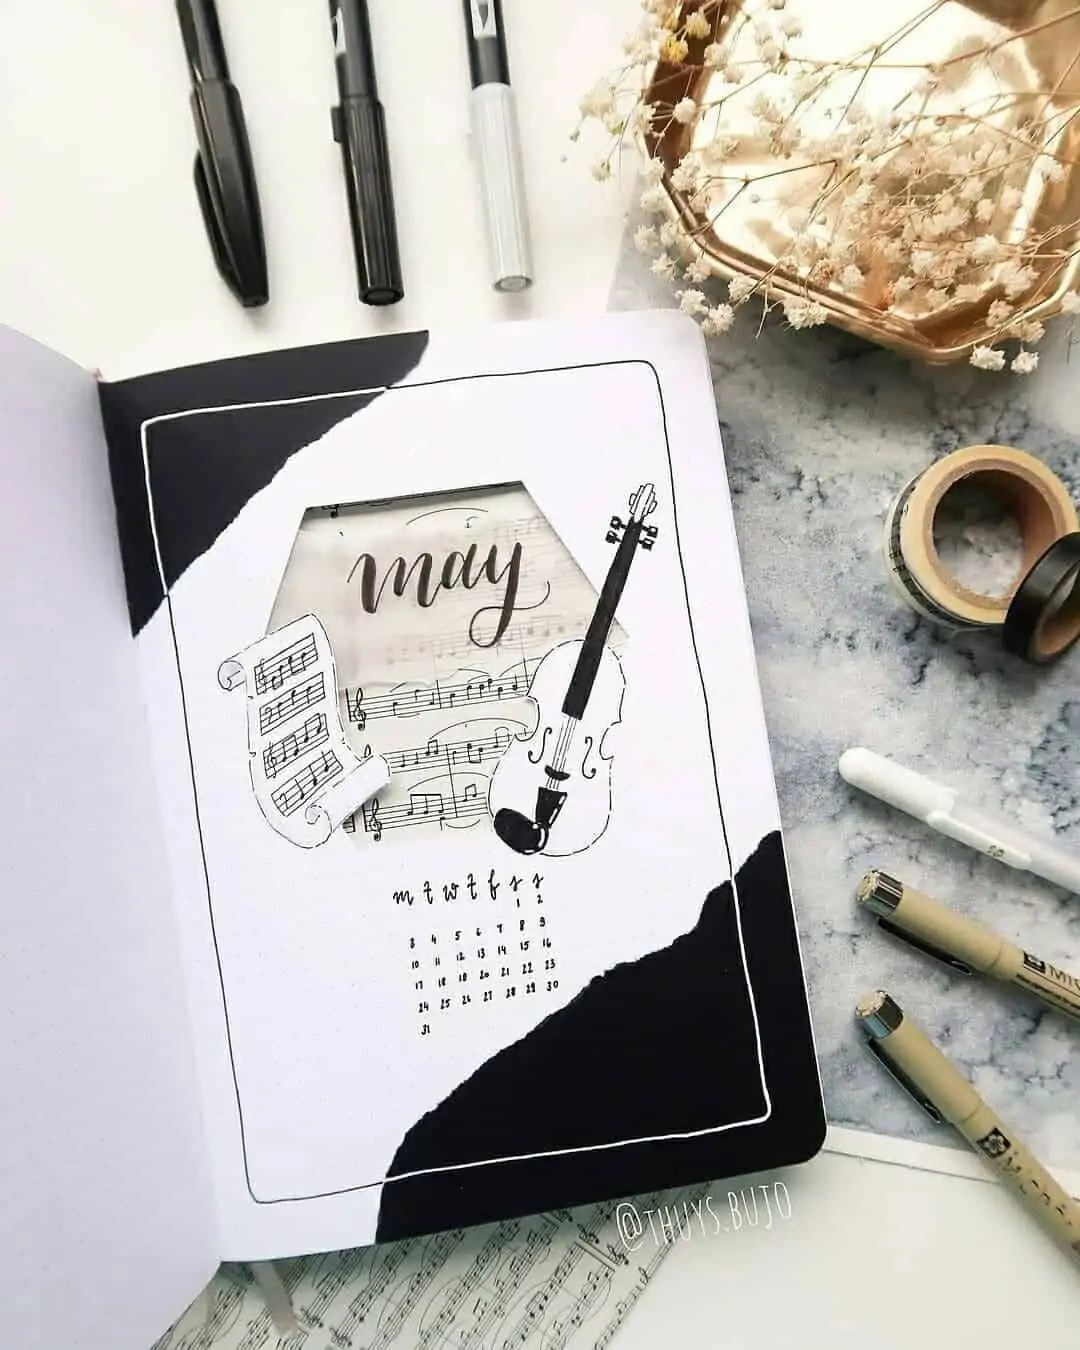 100+ Bullet Journal Ideas that you have to see and copy today! 186